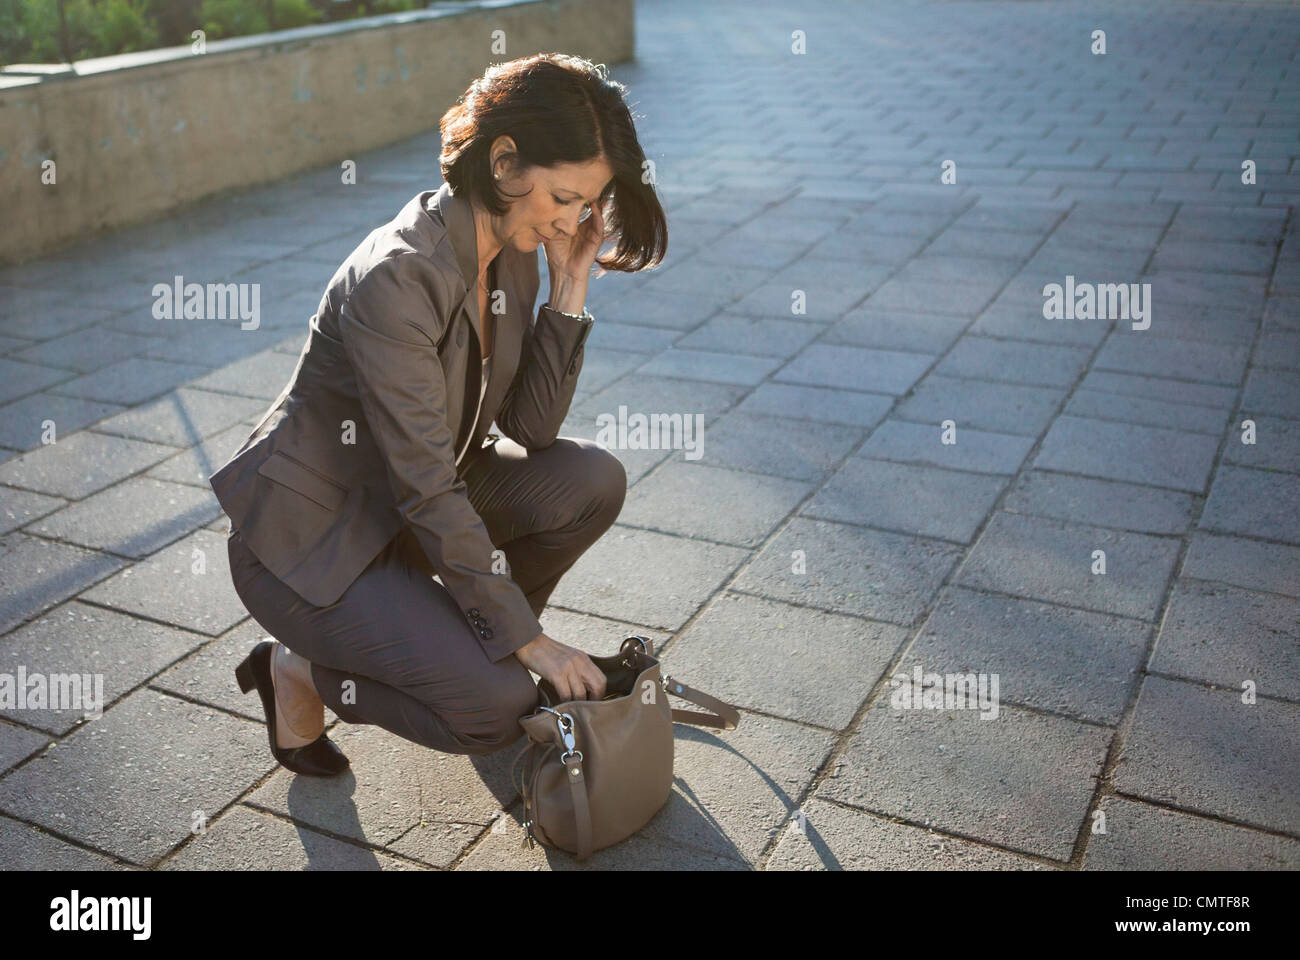 Businesswoman searching for something in handbag - Stock Image